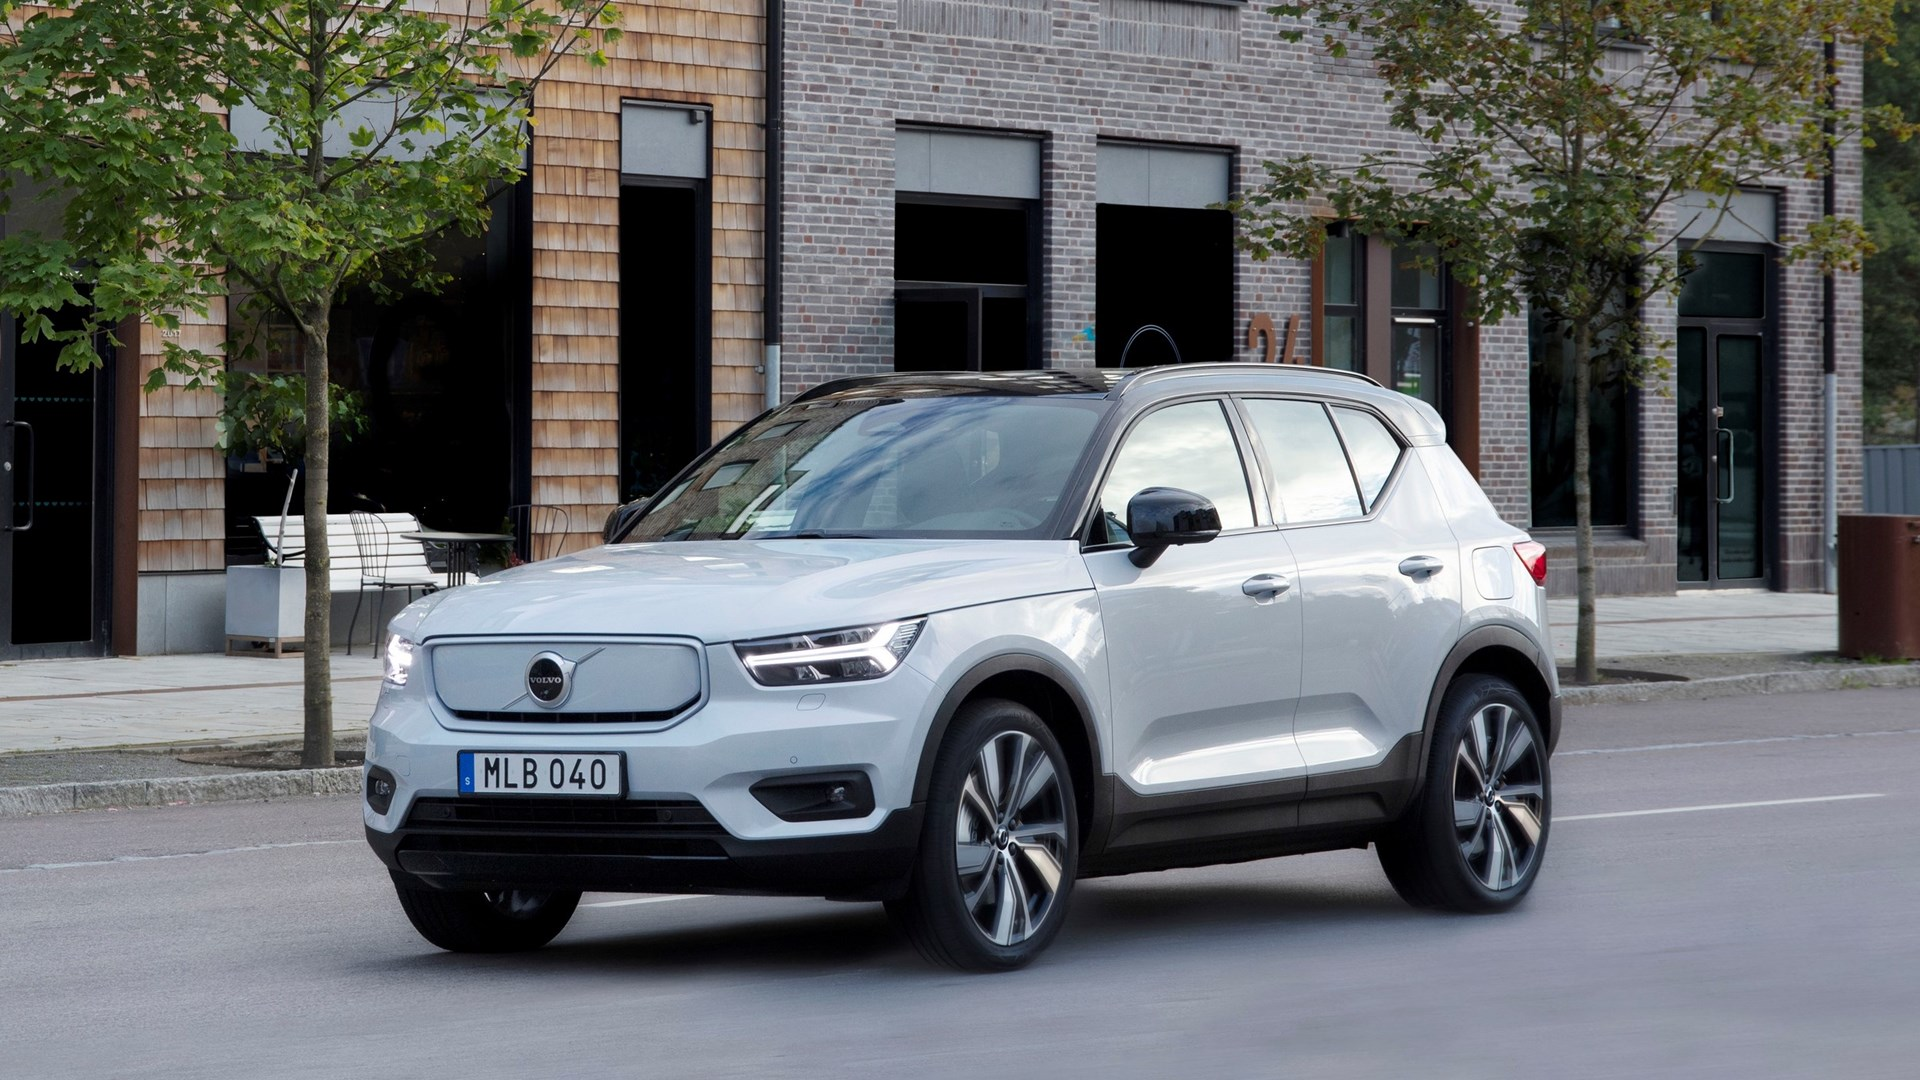 Volvo's first all-electric car – the XC40 Recharge – has arrived in the United States, and it comes at a premium over the Tesla Model Y.